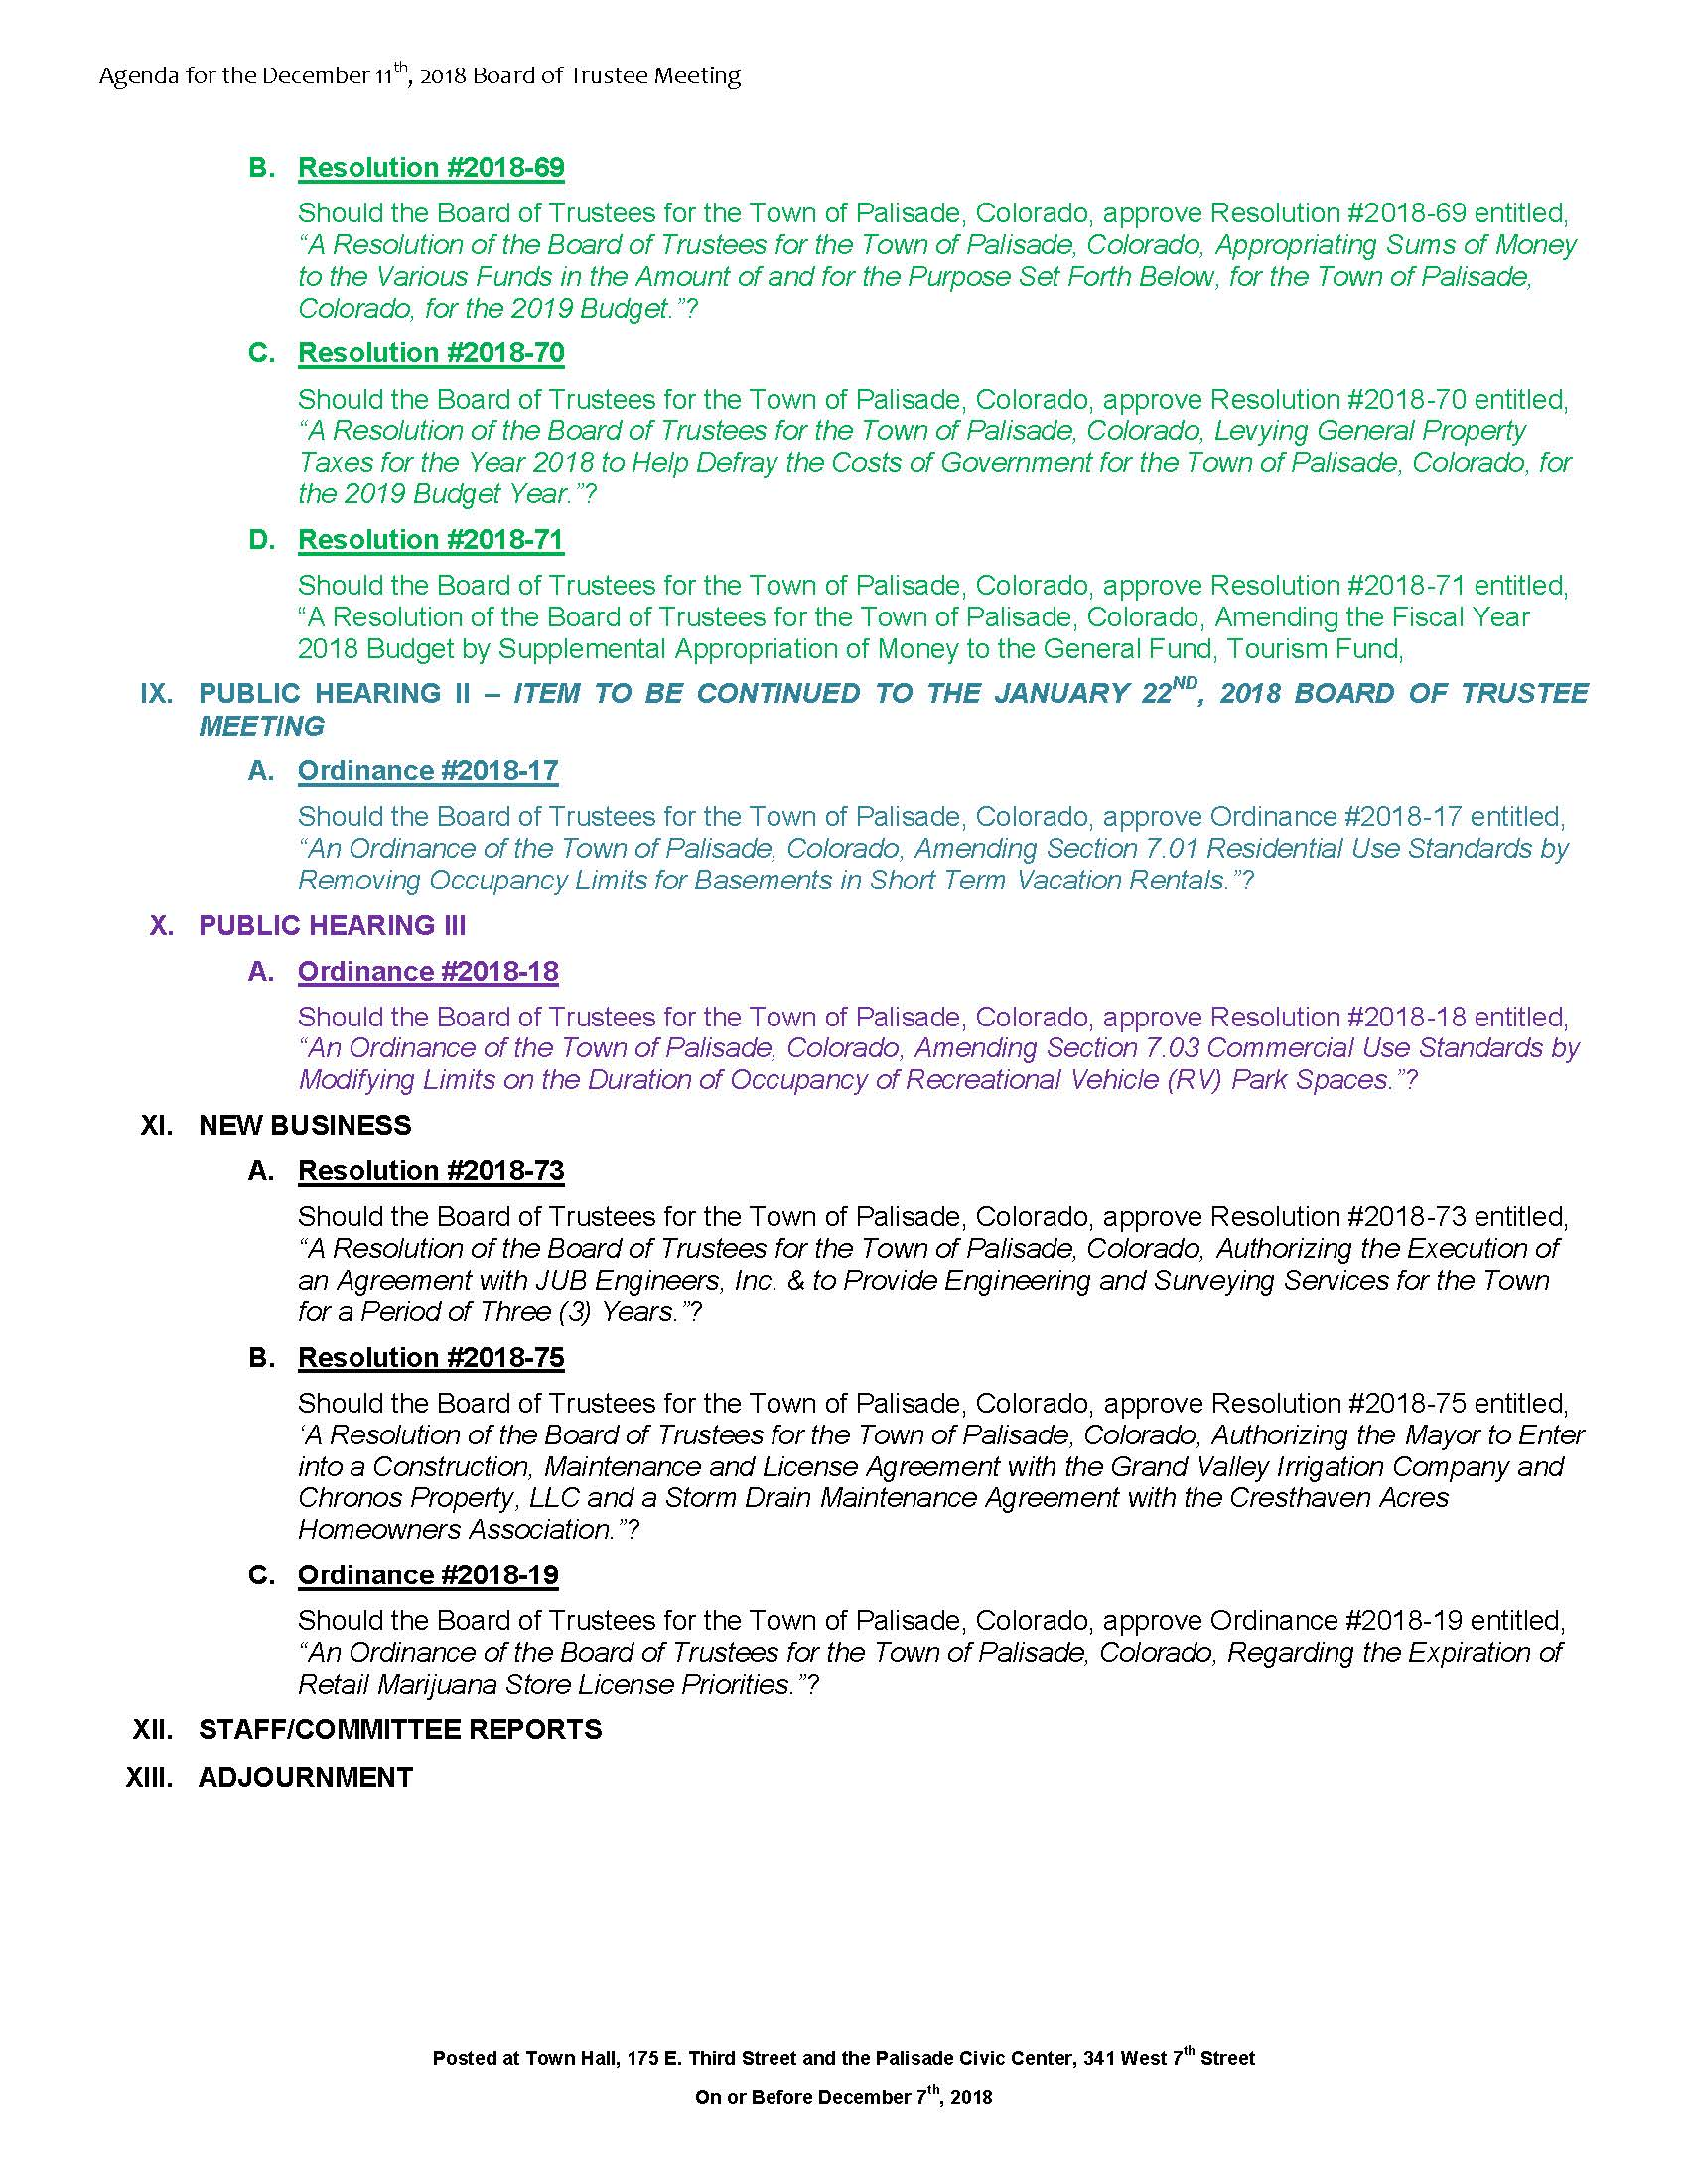 December 11th 2018 Board Meeting Agenda Page 2